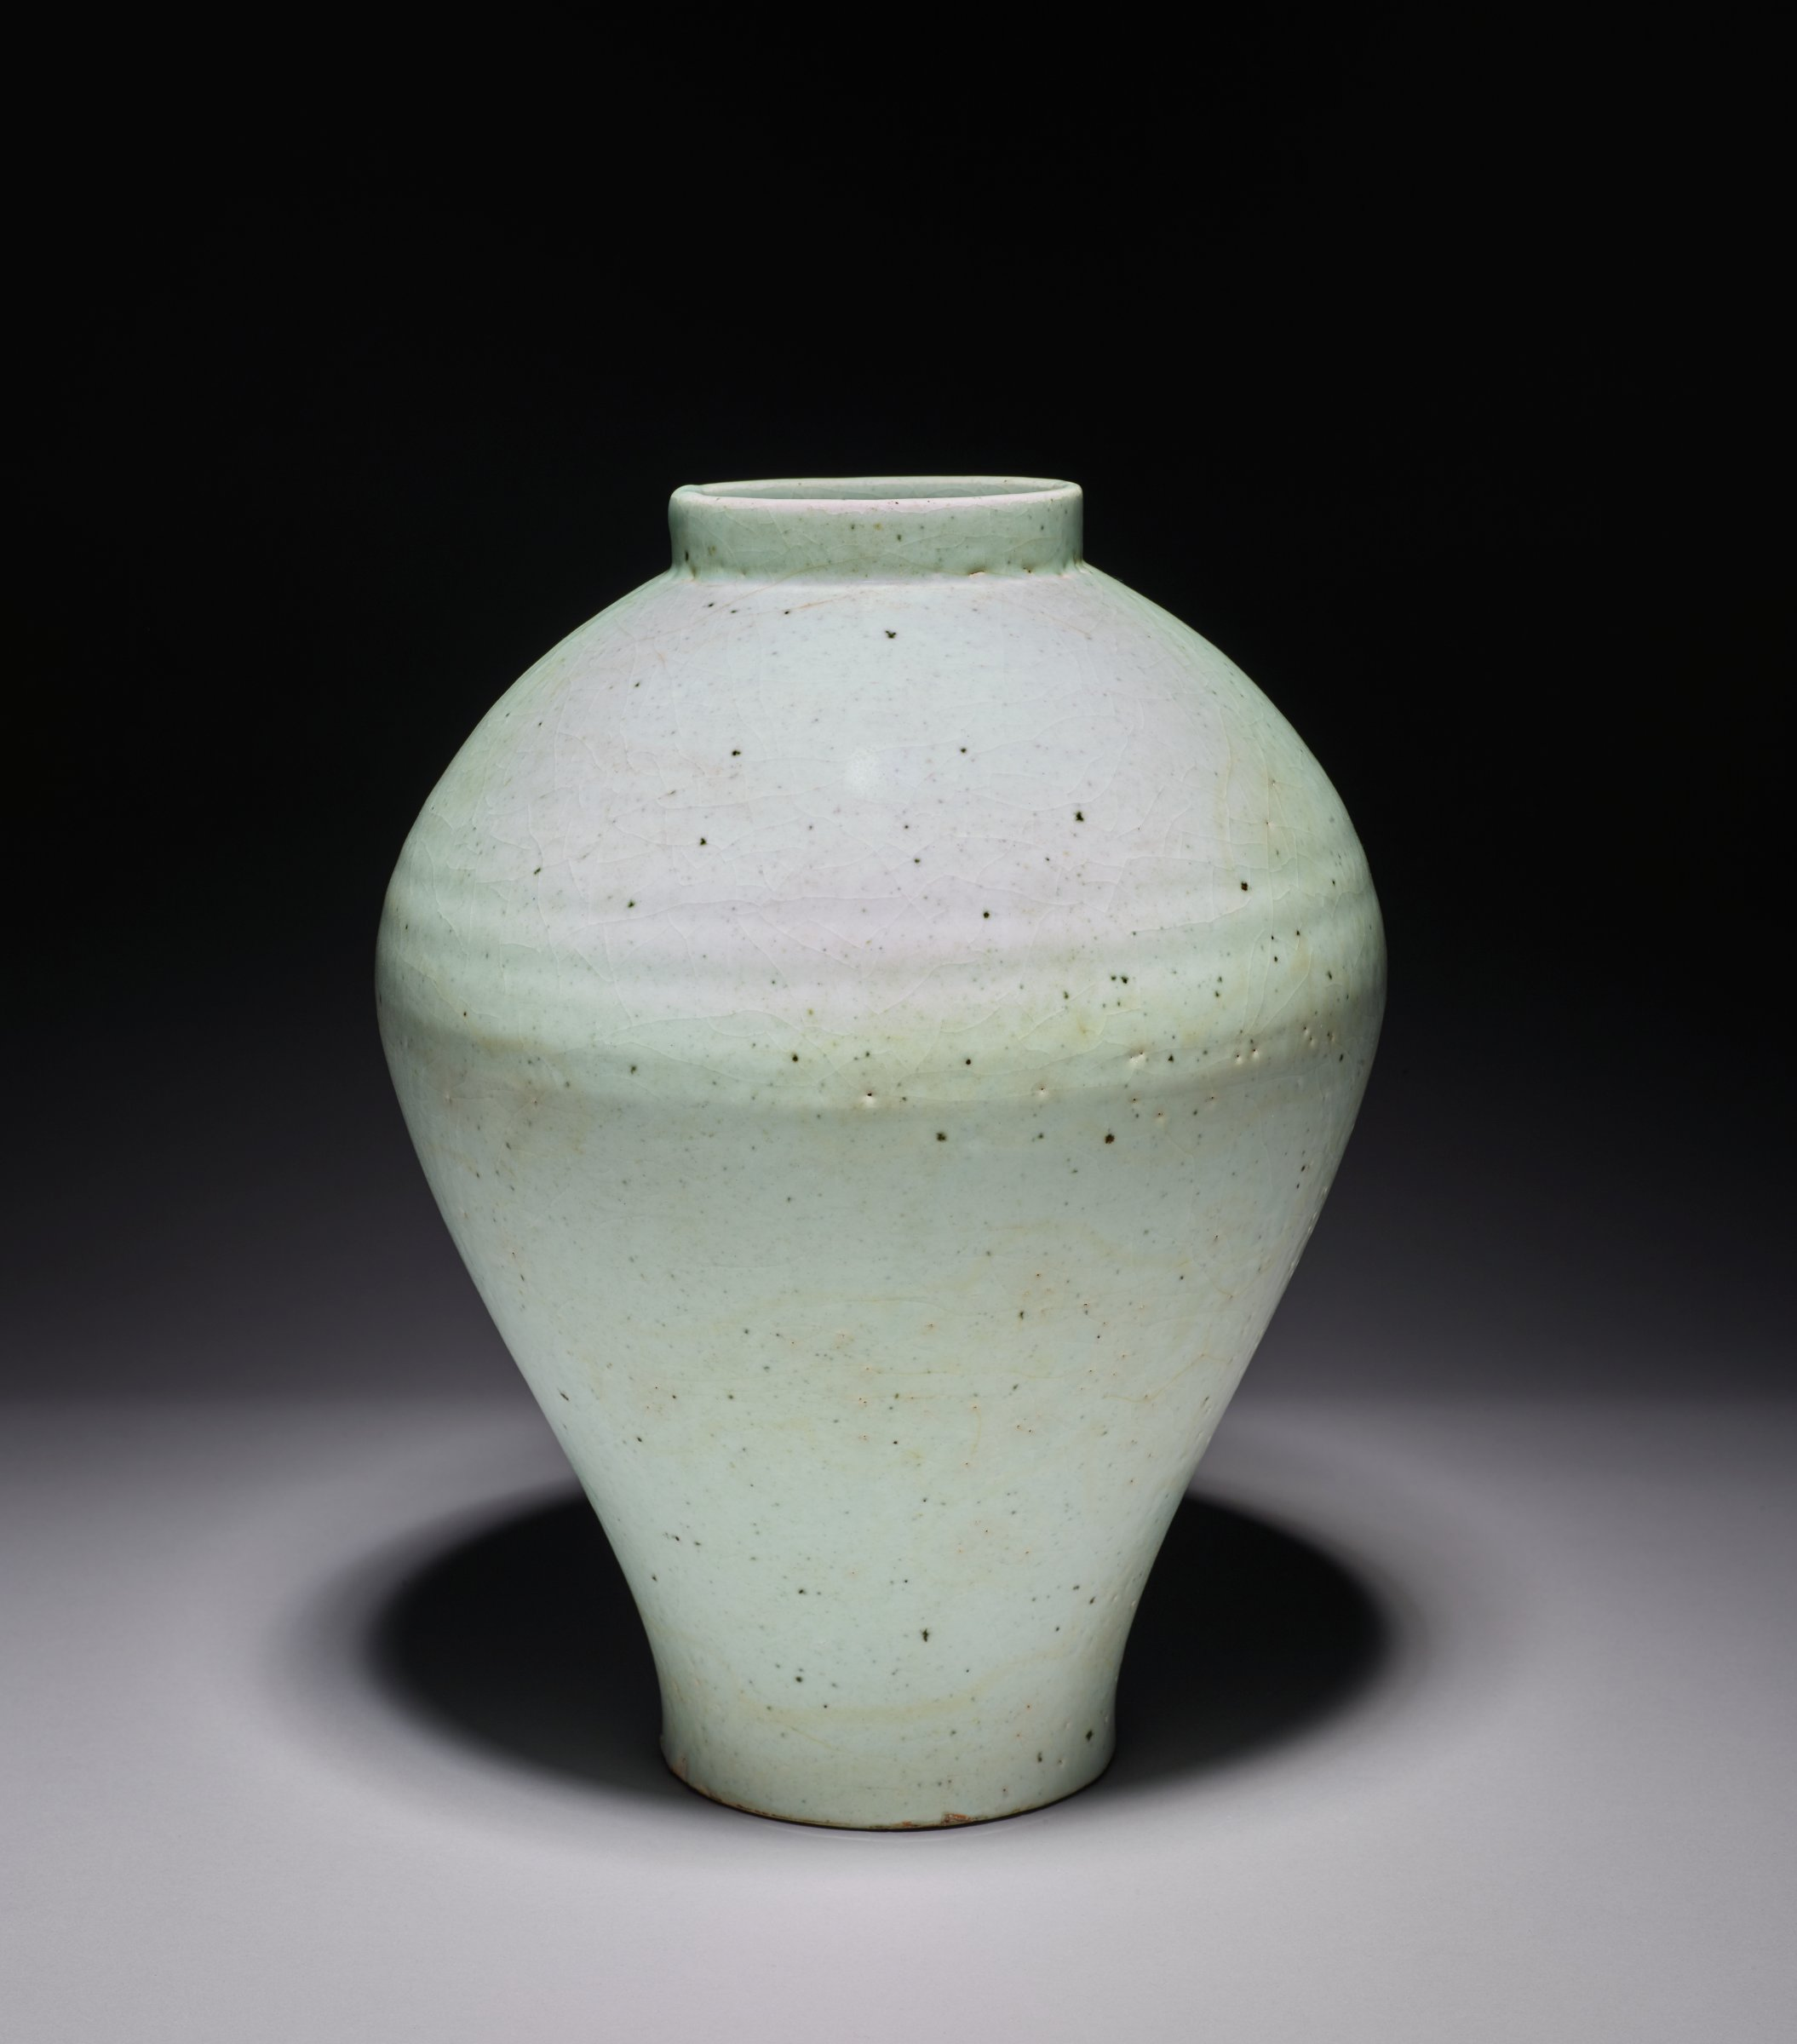 A Korean whiteware most likely used as floral vase (often silk or paper flowers) for aristocrats. The body is covered with a crackled transparent glaze of pronounced blue cast that makes the vase show a lightly celadon blue hue. The vase has a sloping shoulder and an upright circular rim and is resting on a raised ring foot with patch of kiln grit on recessed base. Lightweight, possibly 19th or even 20th century